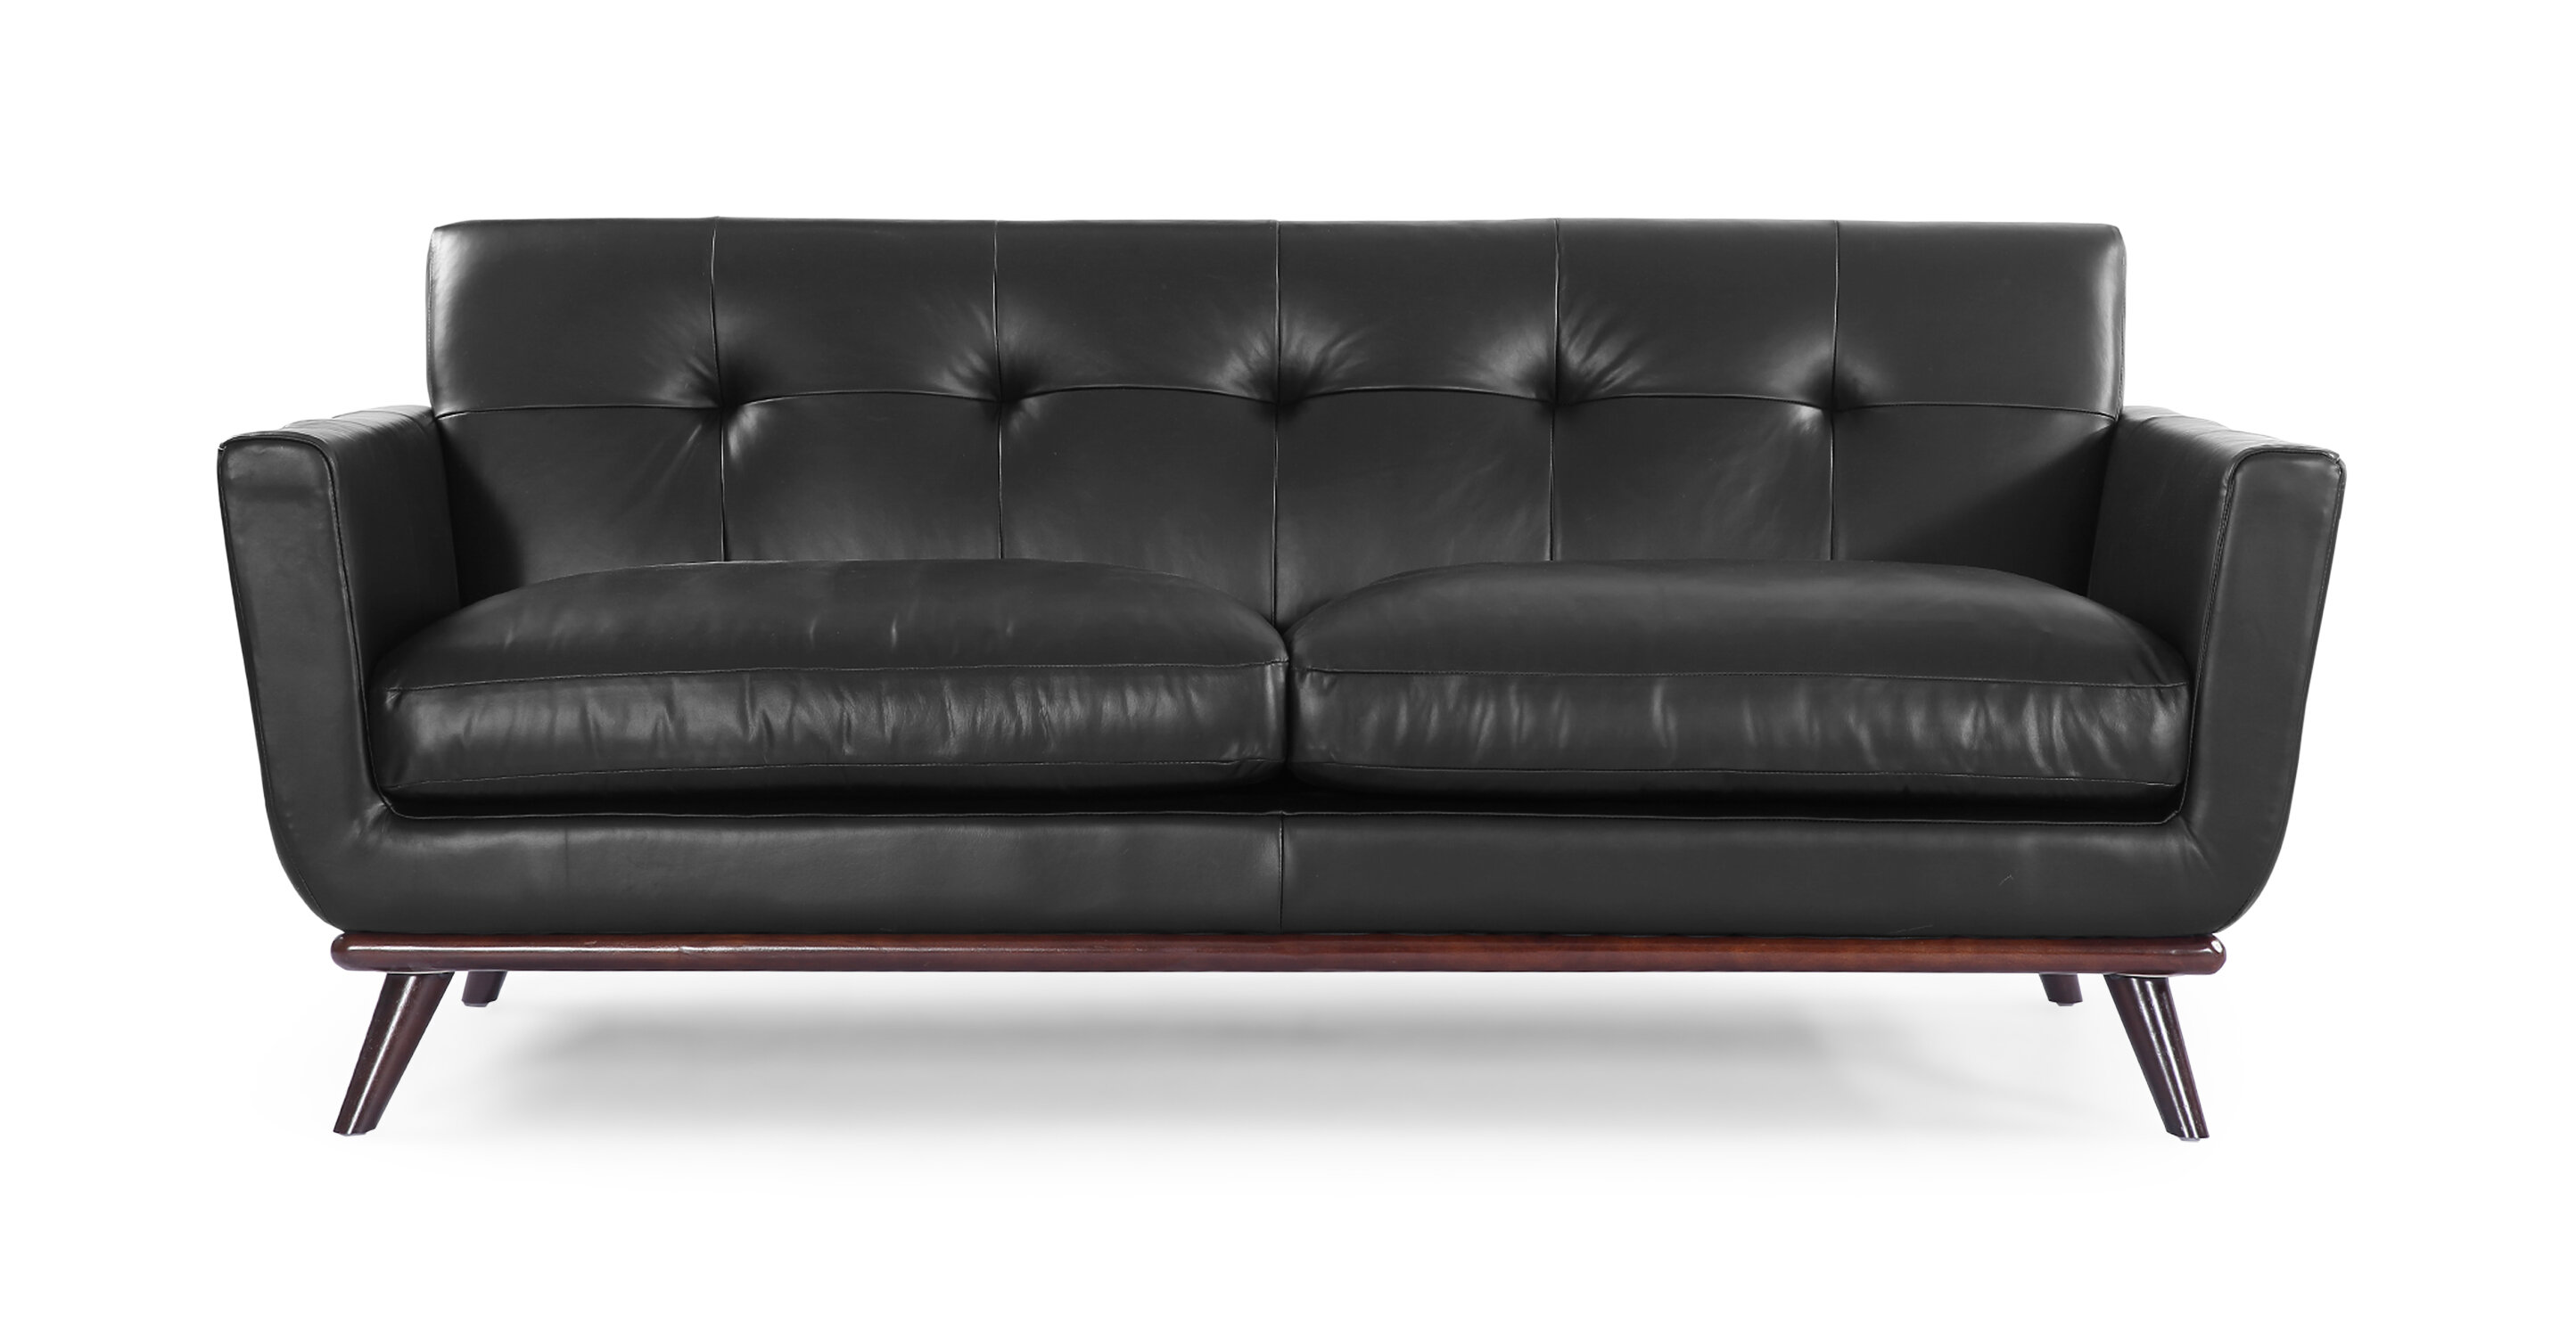 Corrigan studio luther mid century modern leather sofa wayfair